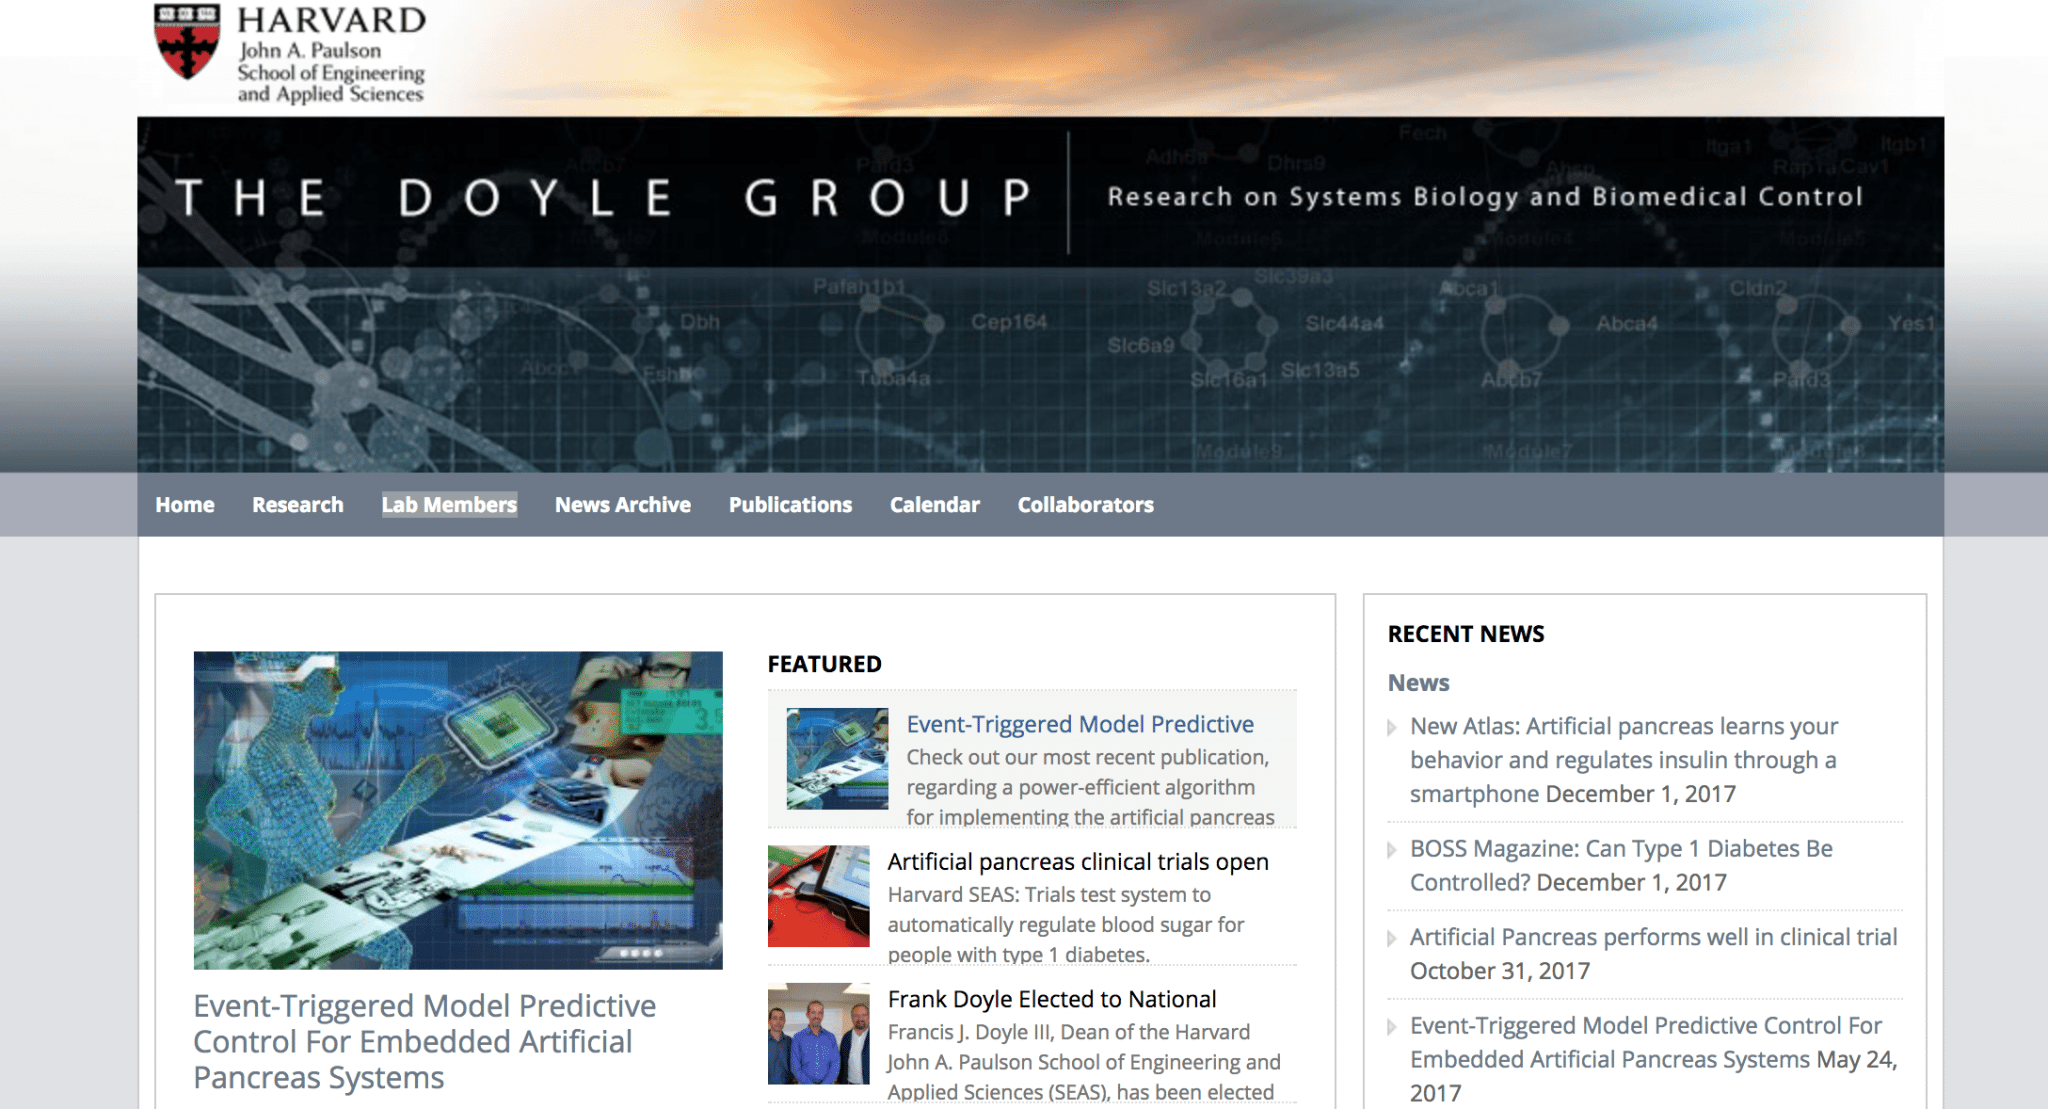 The Doyle Group